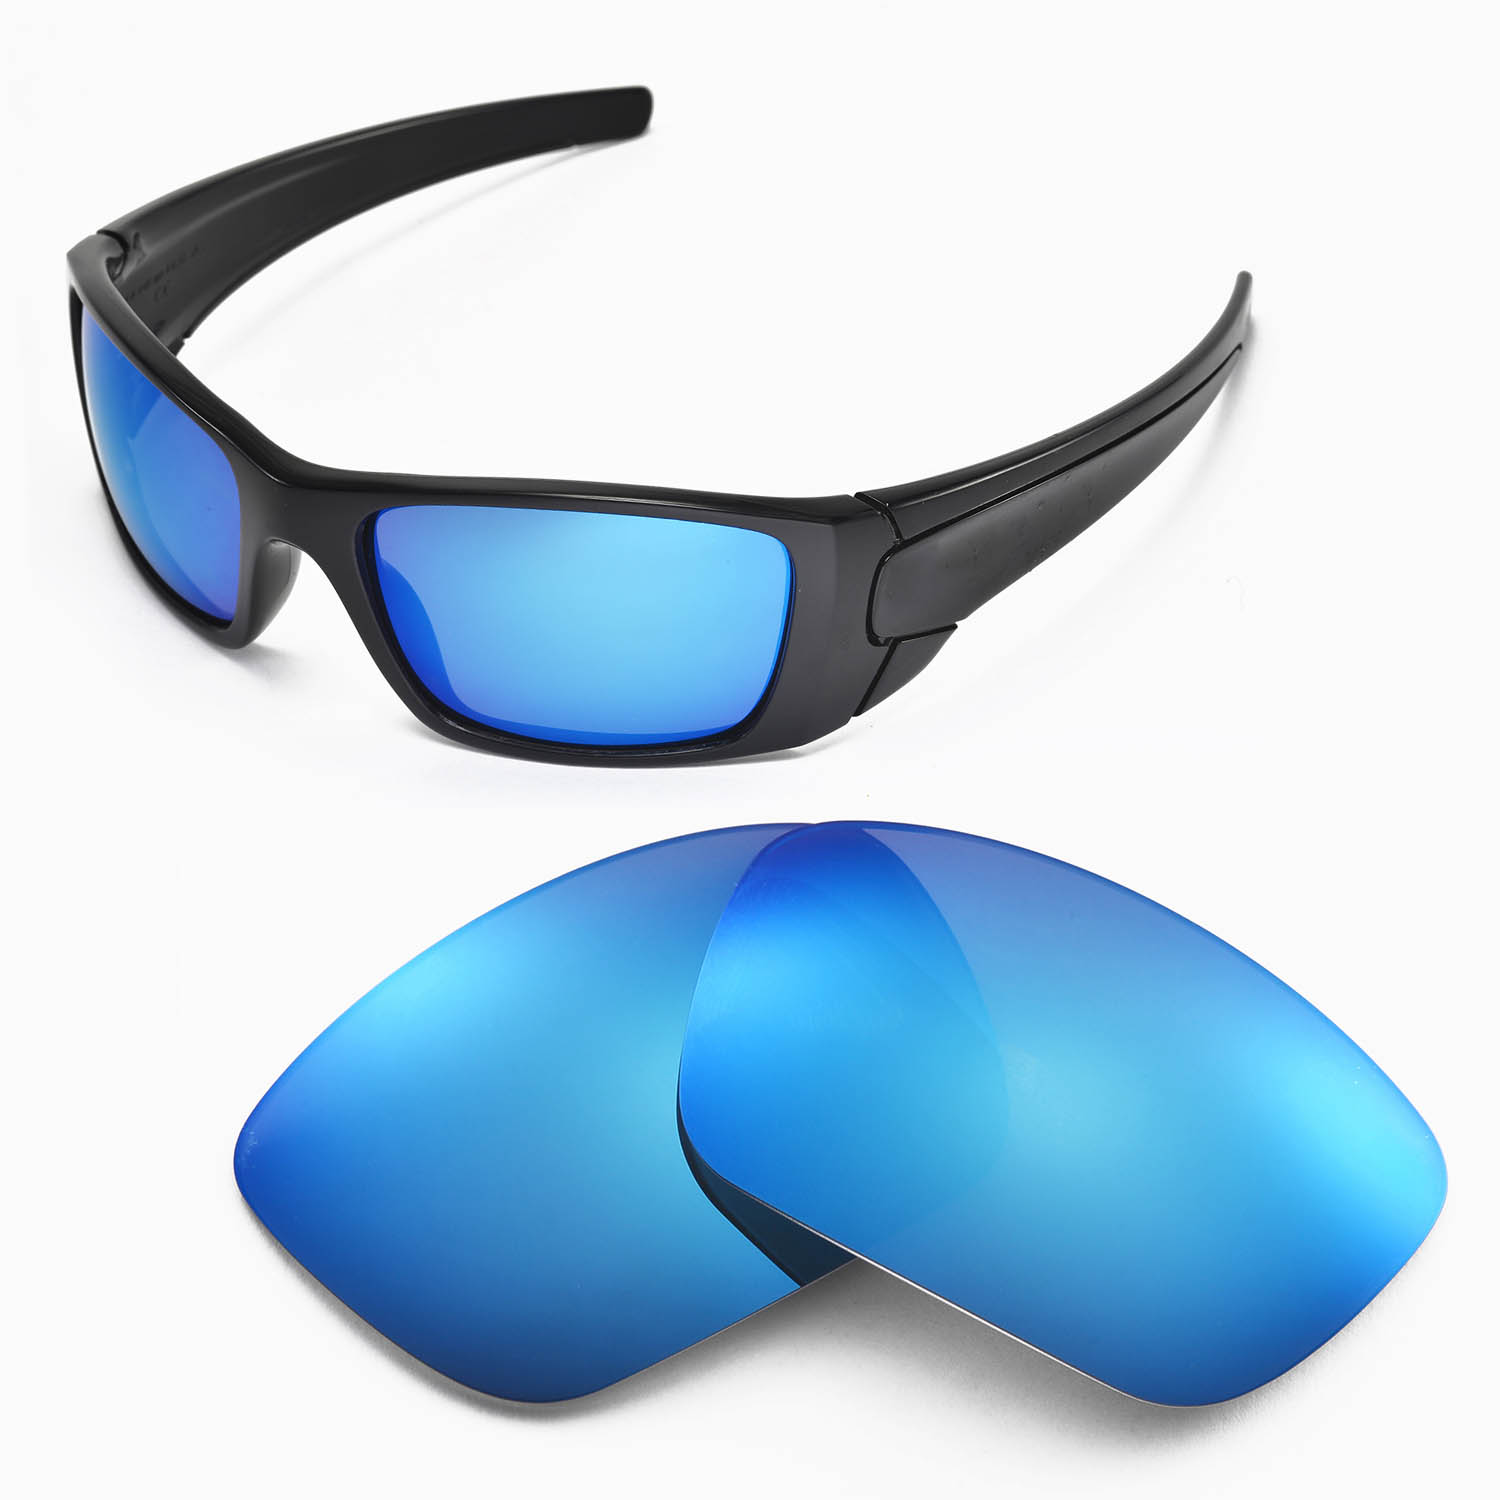 6f2f8eda2f Details about New Walleva Ice Blue Replacement Lenses For Oakley Fuel Cell  Sunglasses